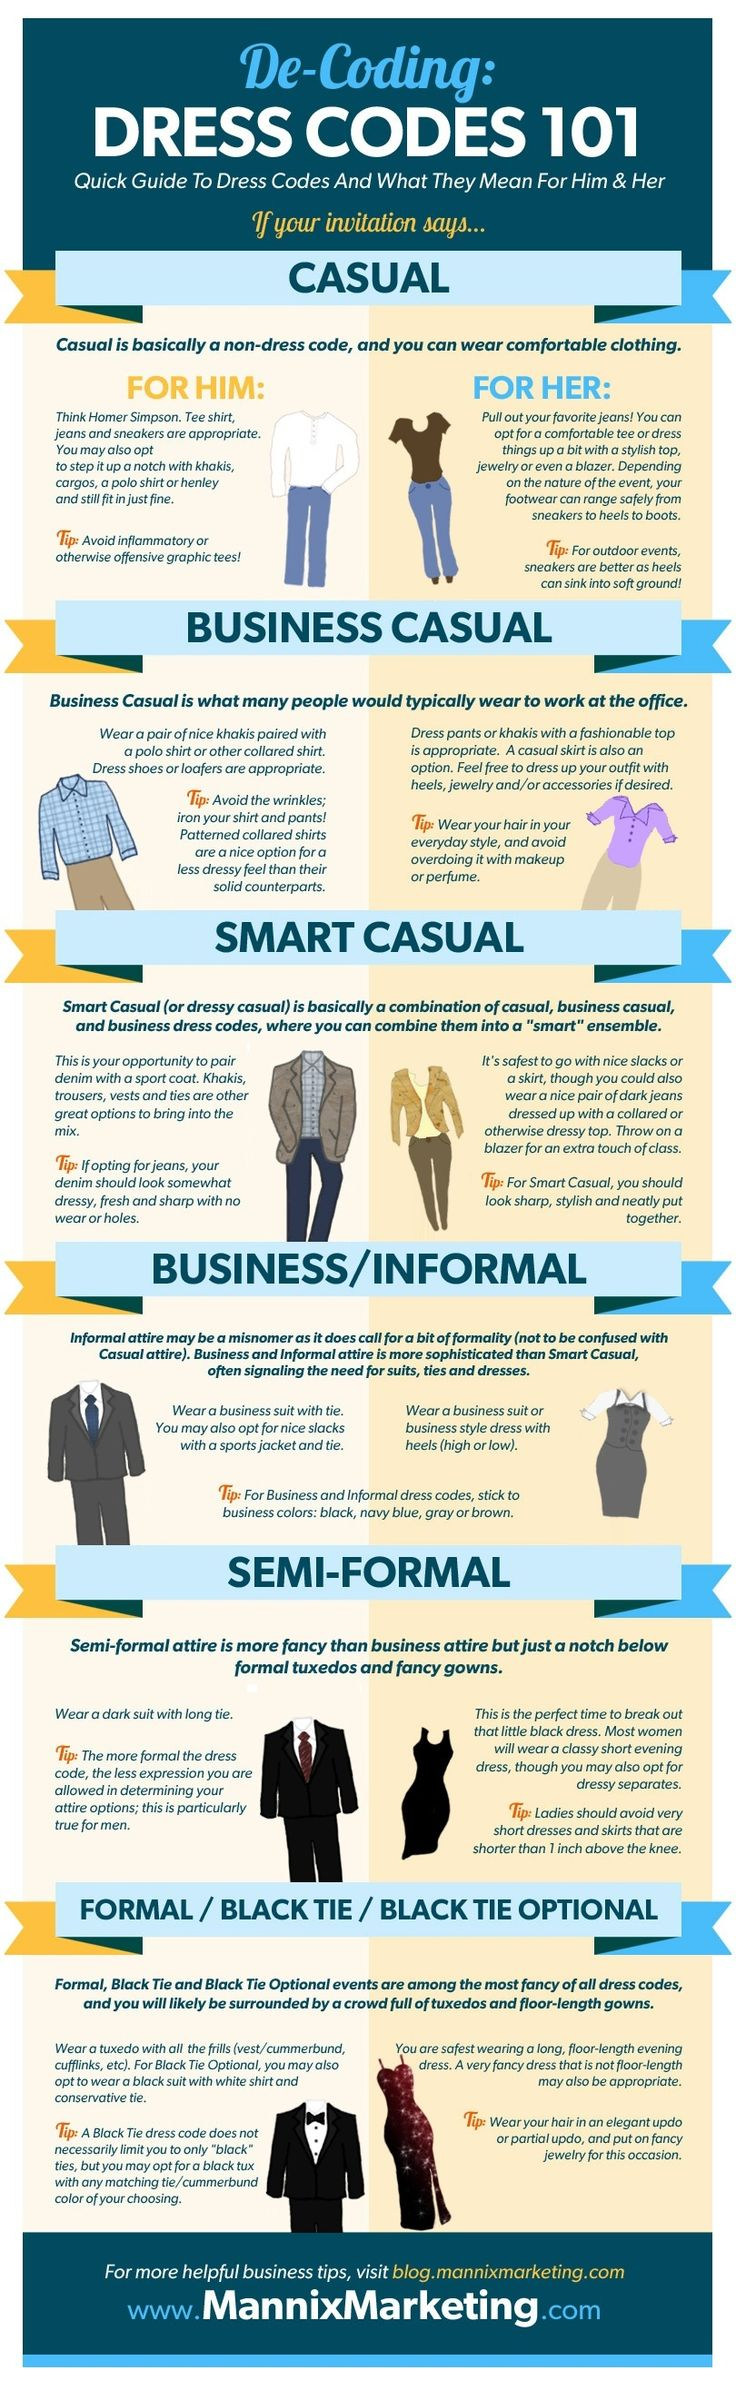 Guide to clothing attire. dress code for formal, semi formal, business casual events #eventmanagement #corporateevent #eventprofs